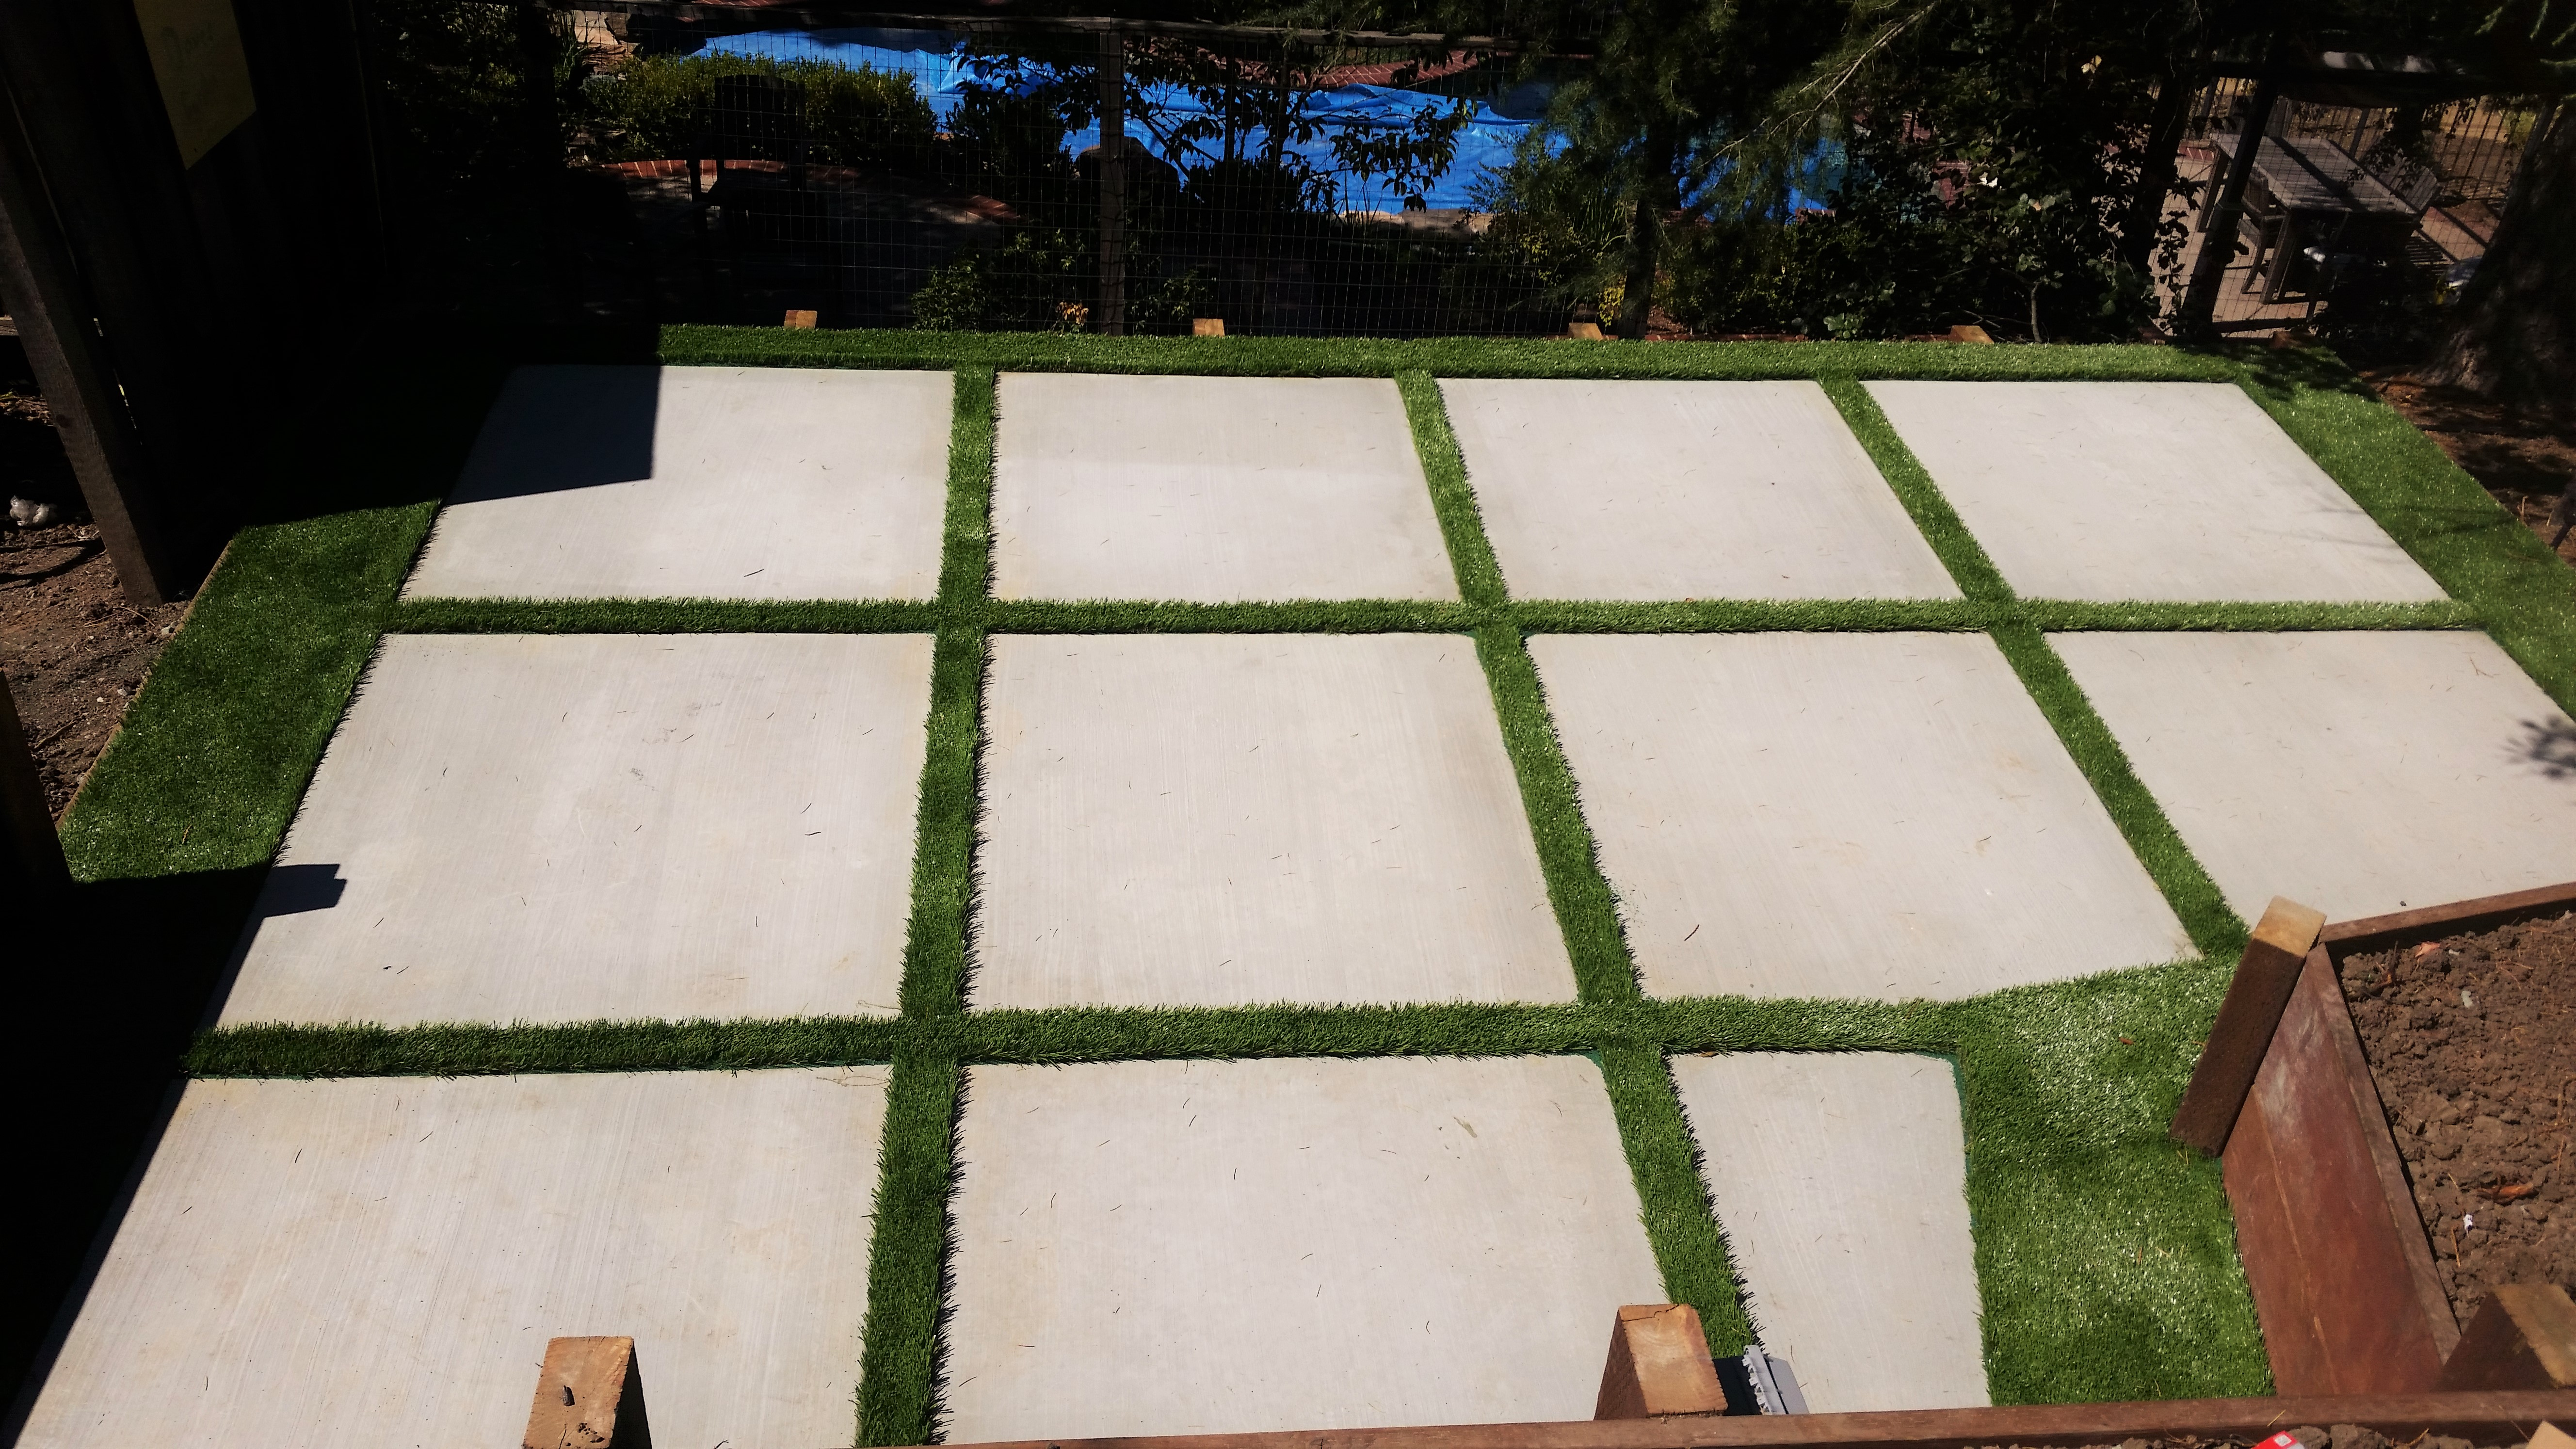 laf-daves-cement-court-with-turf-lining